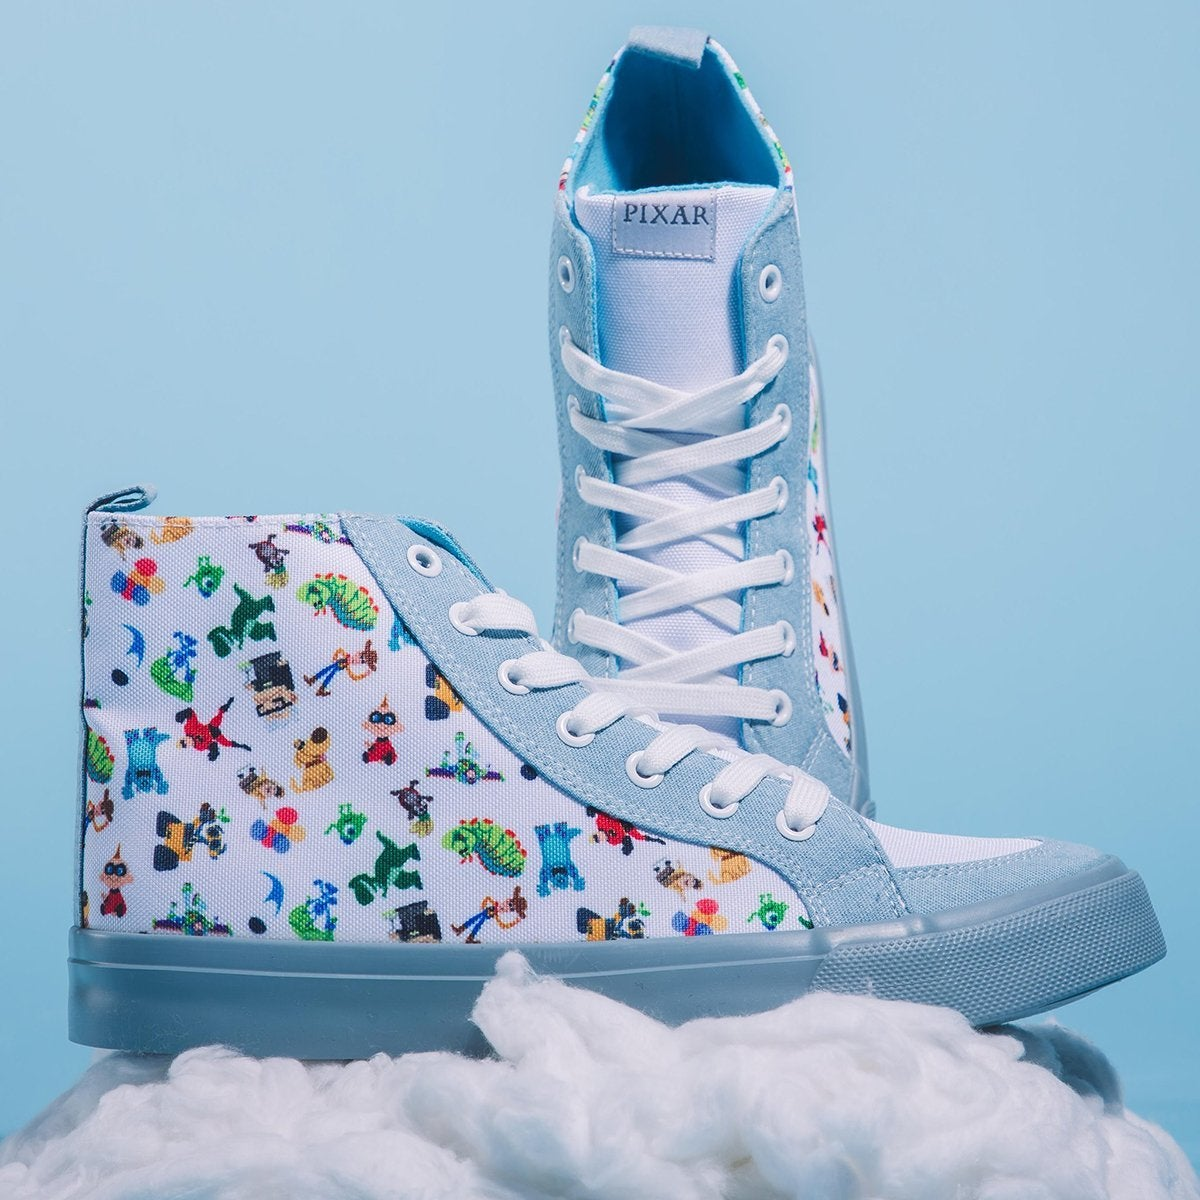 These Disney Pixar Sneakers Are Covered in Characters